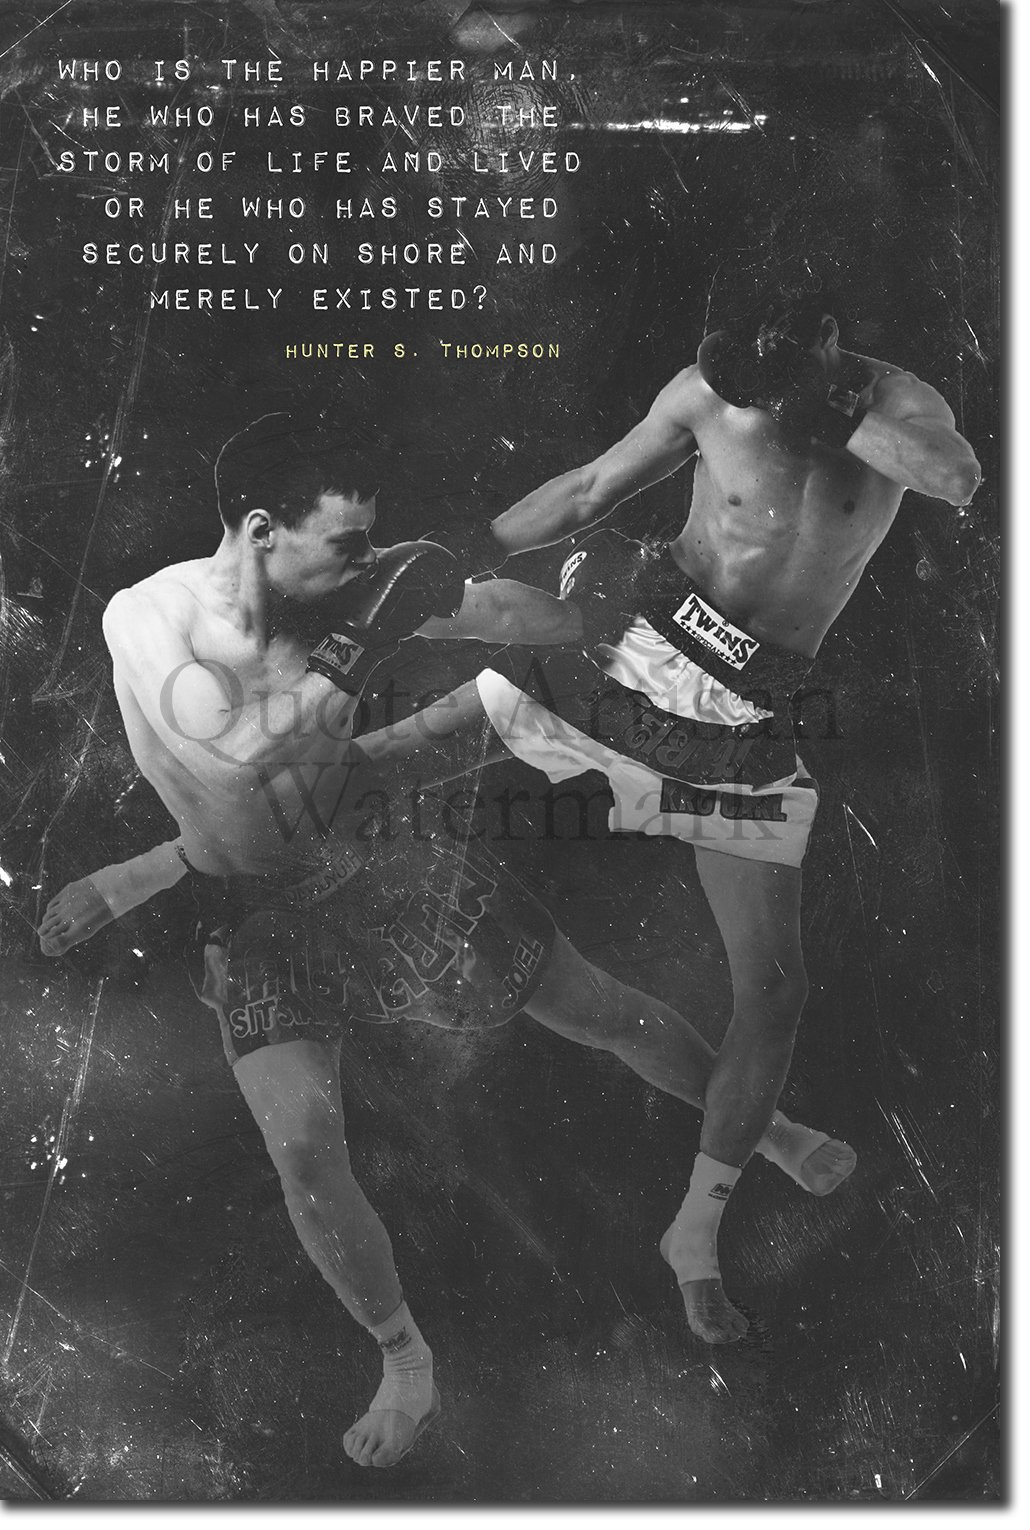 Muay Thai Motivational Poster 01 ''Who is happier'' Photo Print Art Motivation Quote Gift 12x8 Inches Thai Thailand